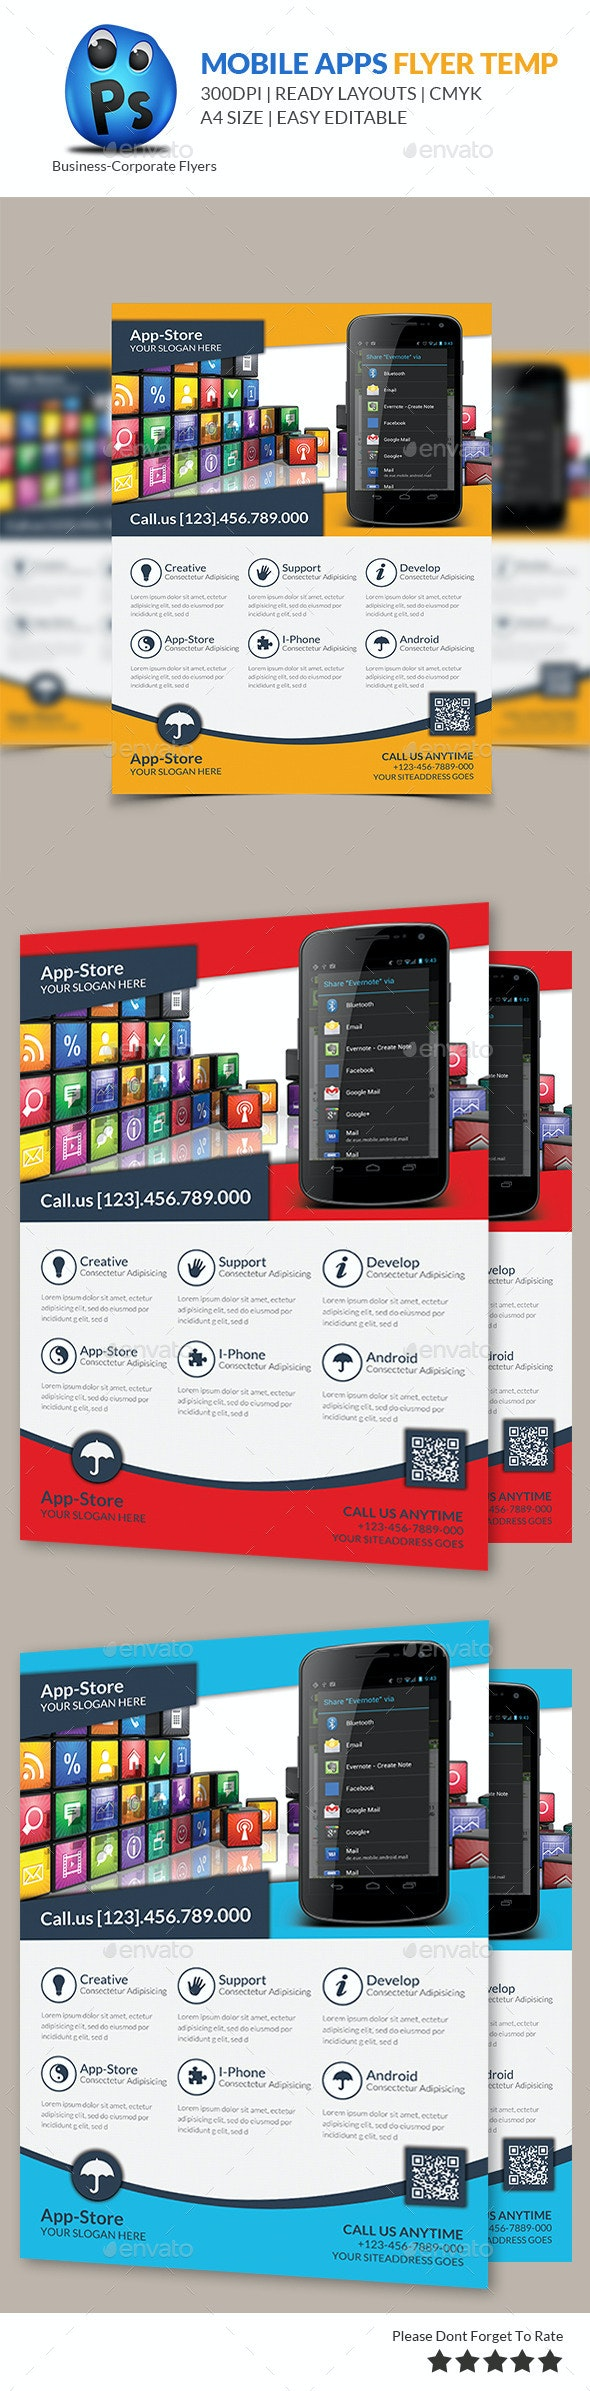 Mobile App Flyer Print Template - Corporate Flyers